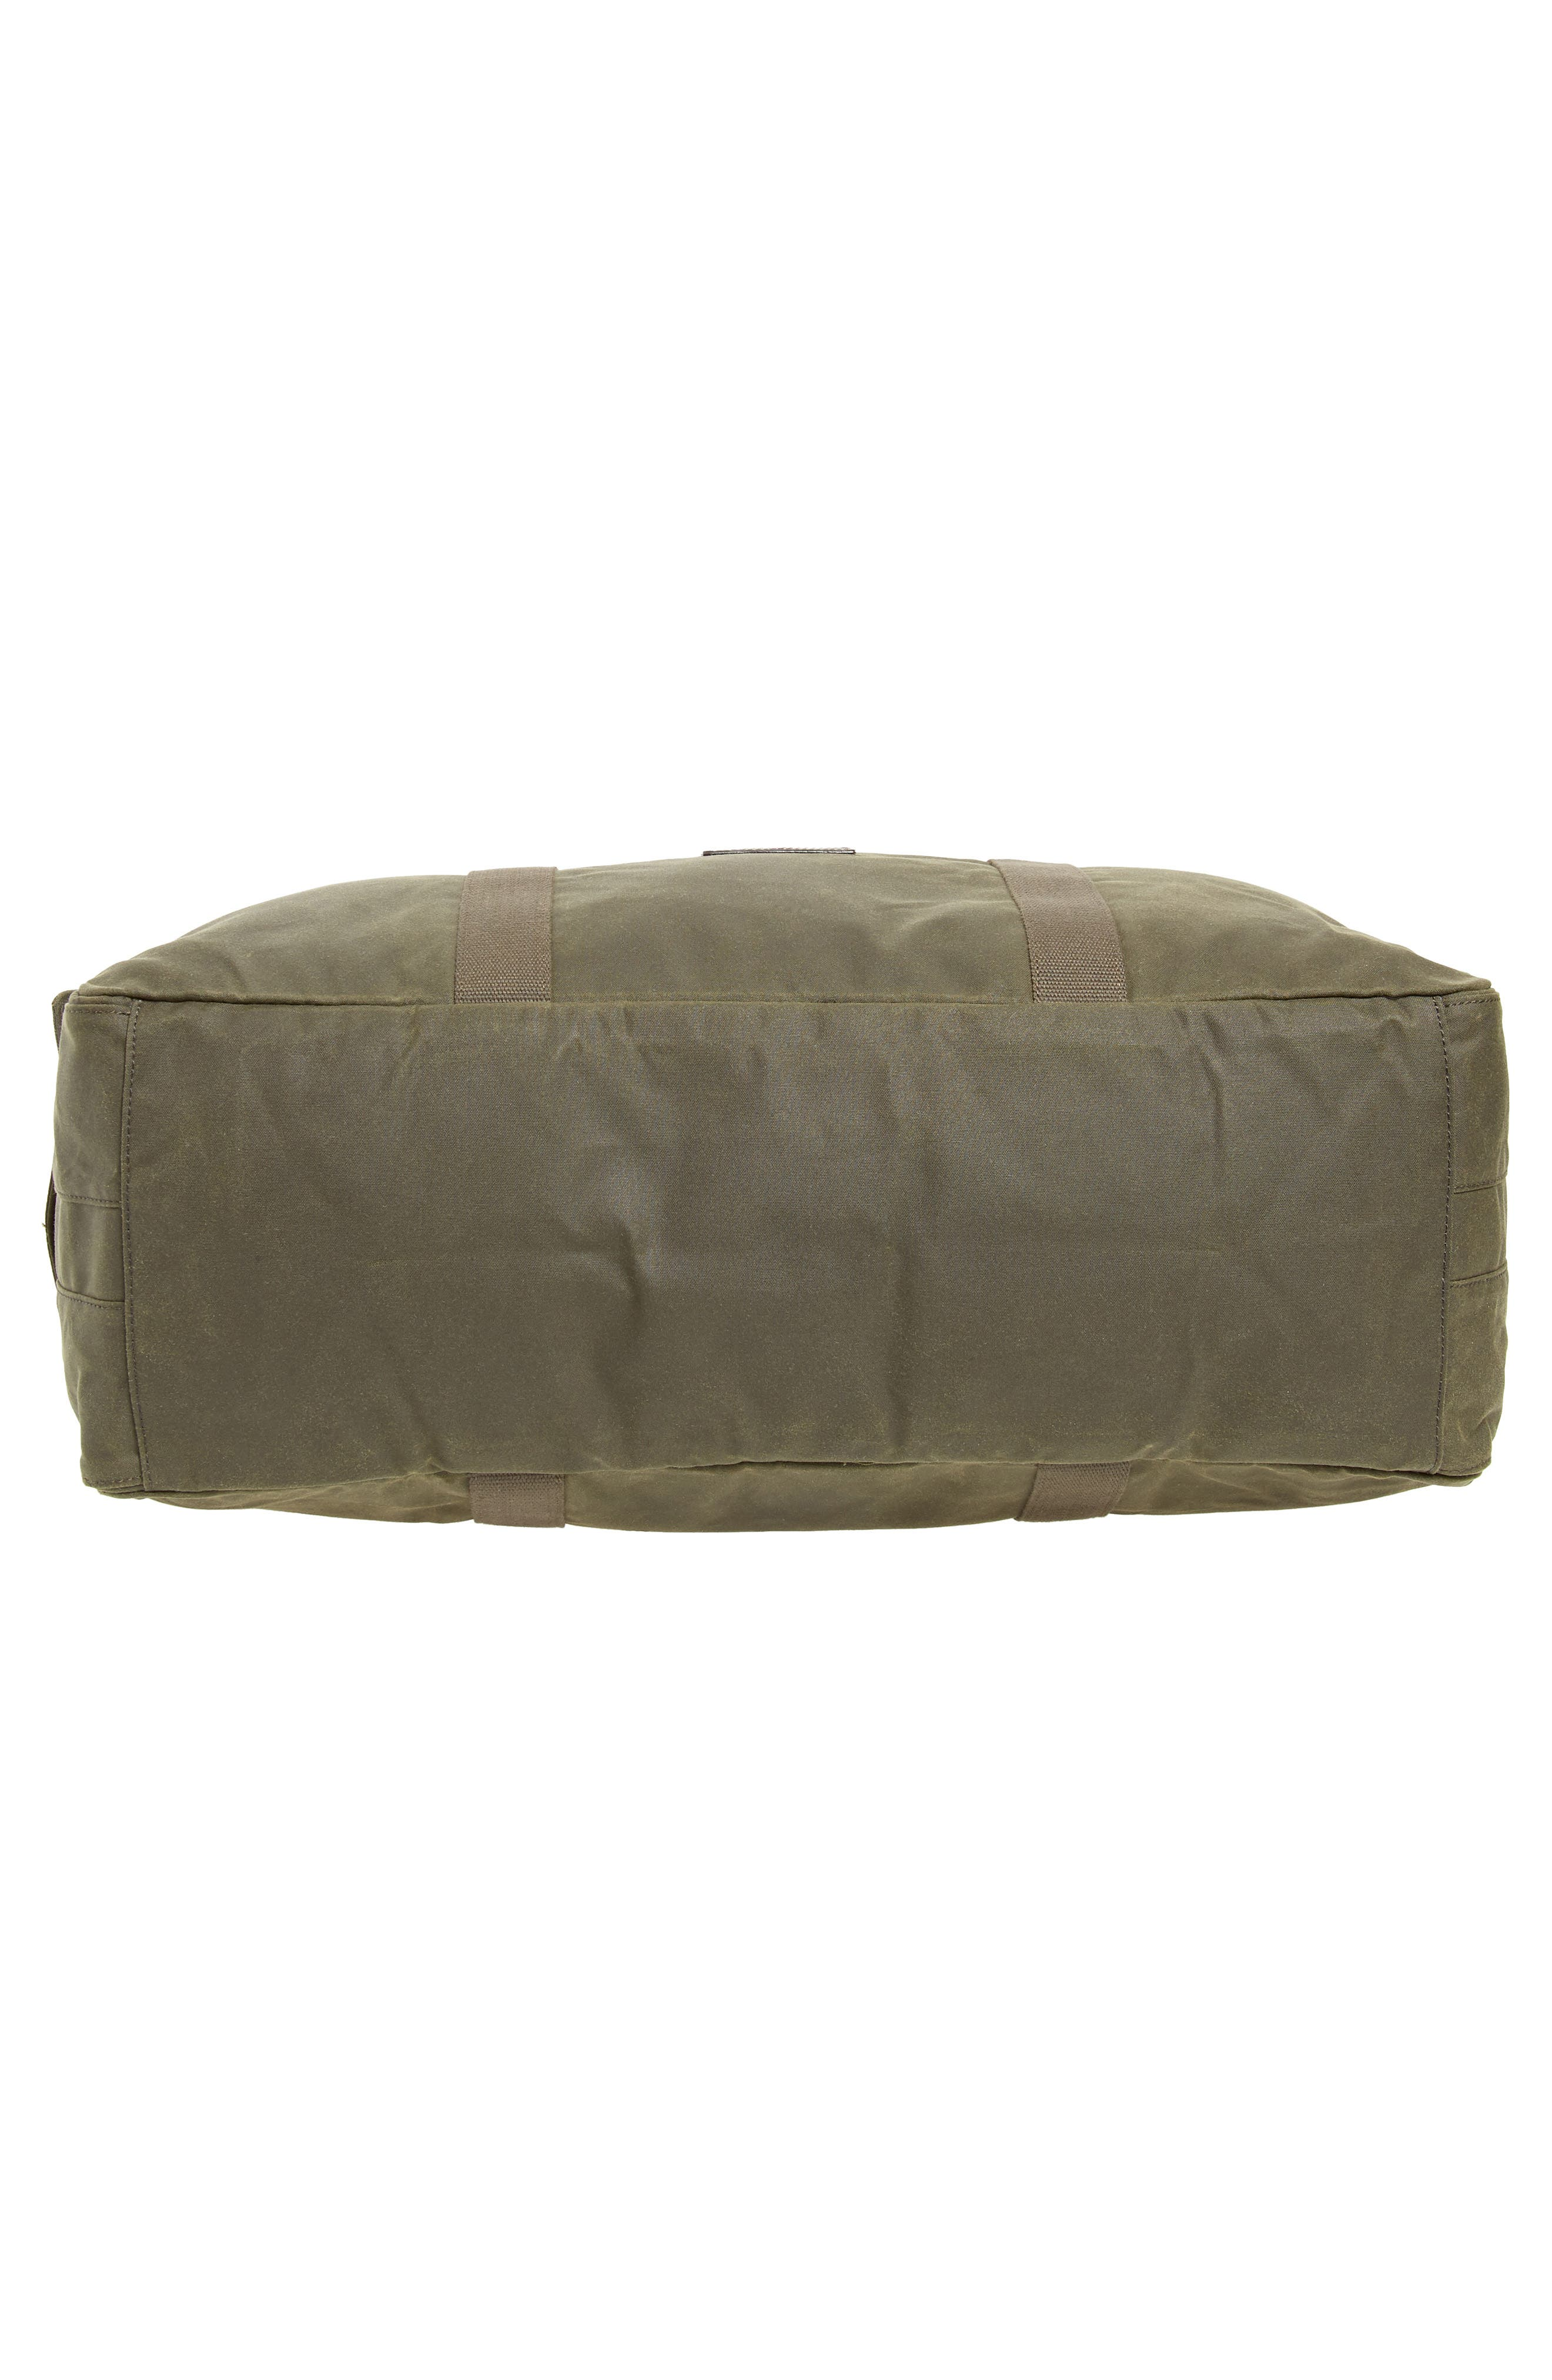 Oakwell Duffel Bag,                             Alternate thumbnail 6, color,                             ARCHIVE OLIVE